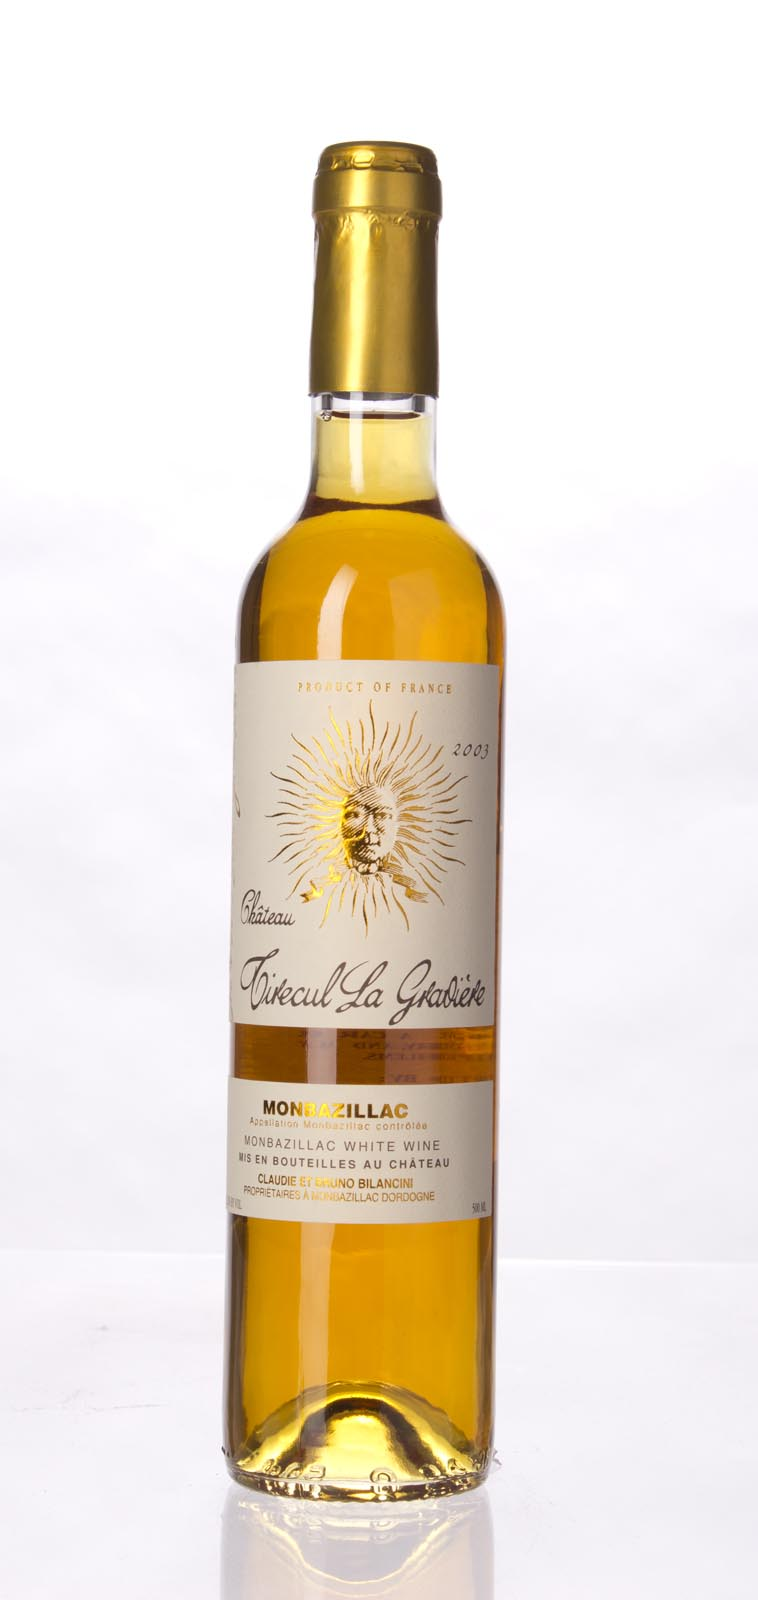 Chateau La Graviere Tirecul Monbazillac 2003, 500mL (WA95) from The BPW - Merchants of rare and fine wines.